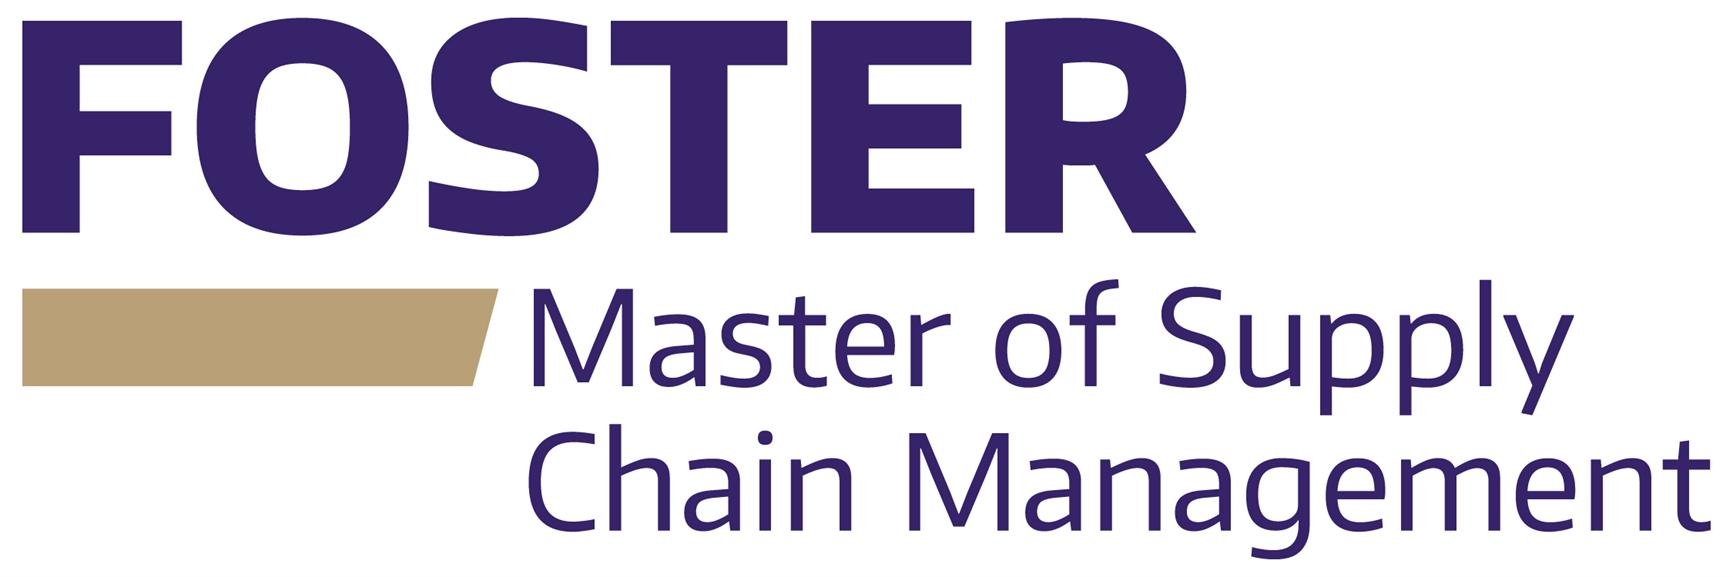 Information Session - Master of Supply Chain Management